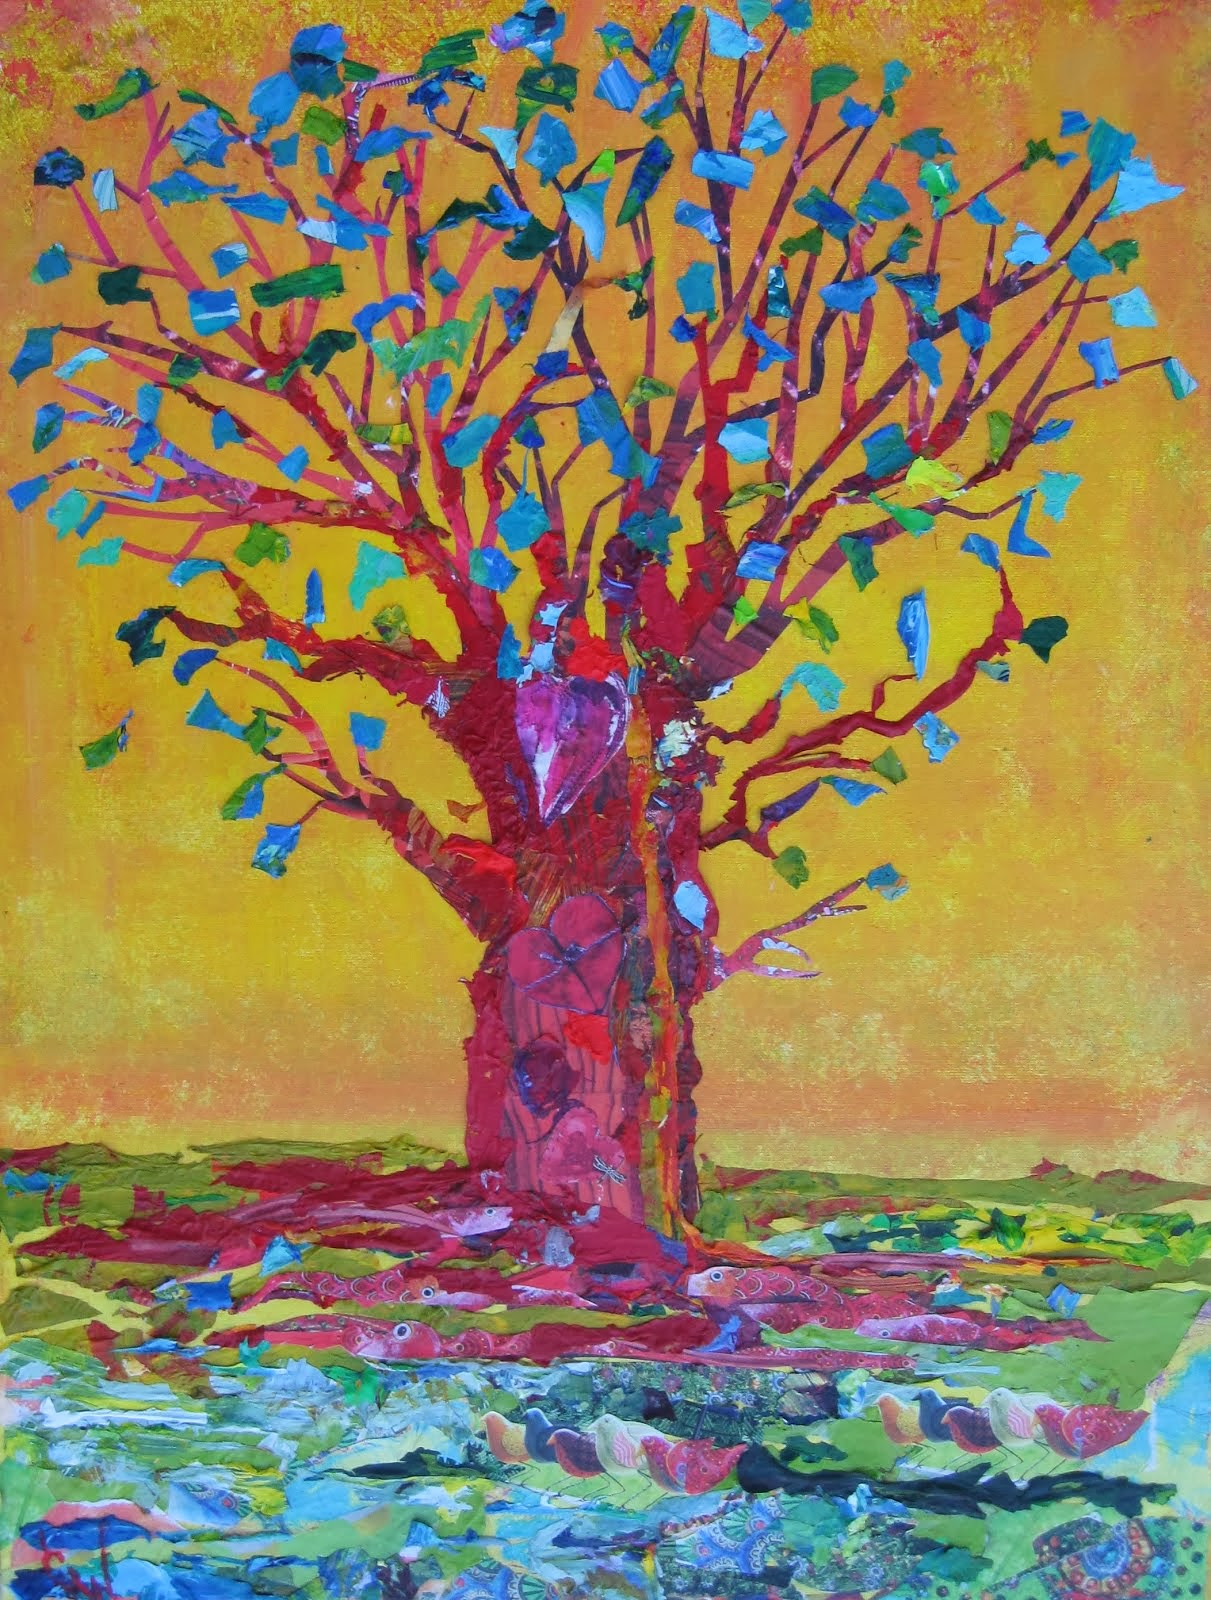 Red Tree With Blue Leaves By The River